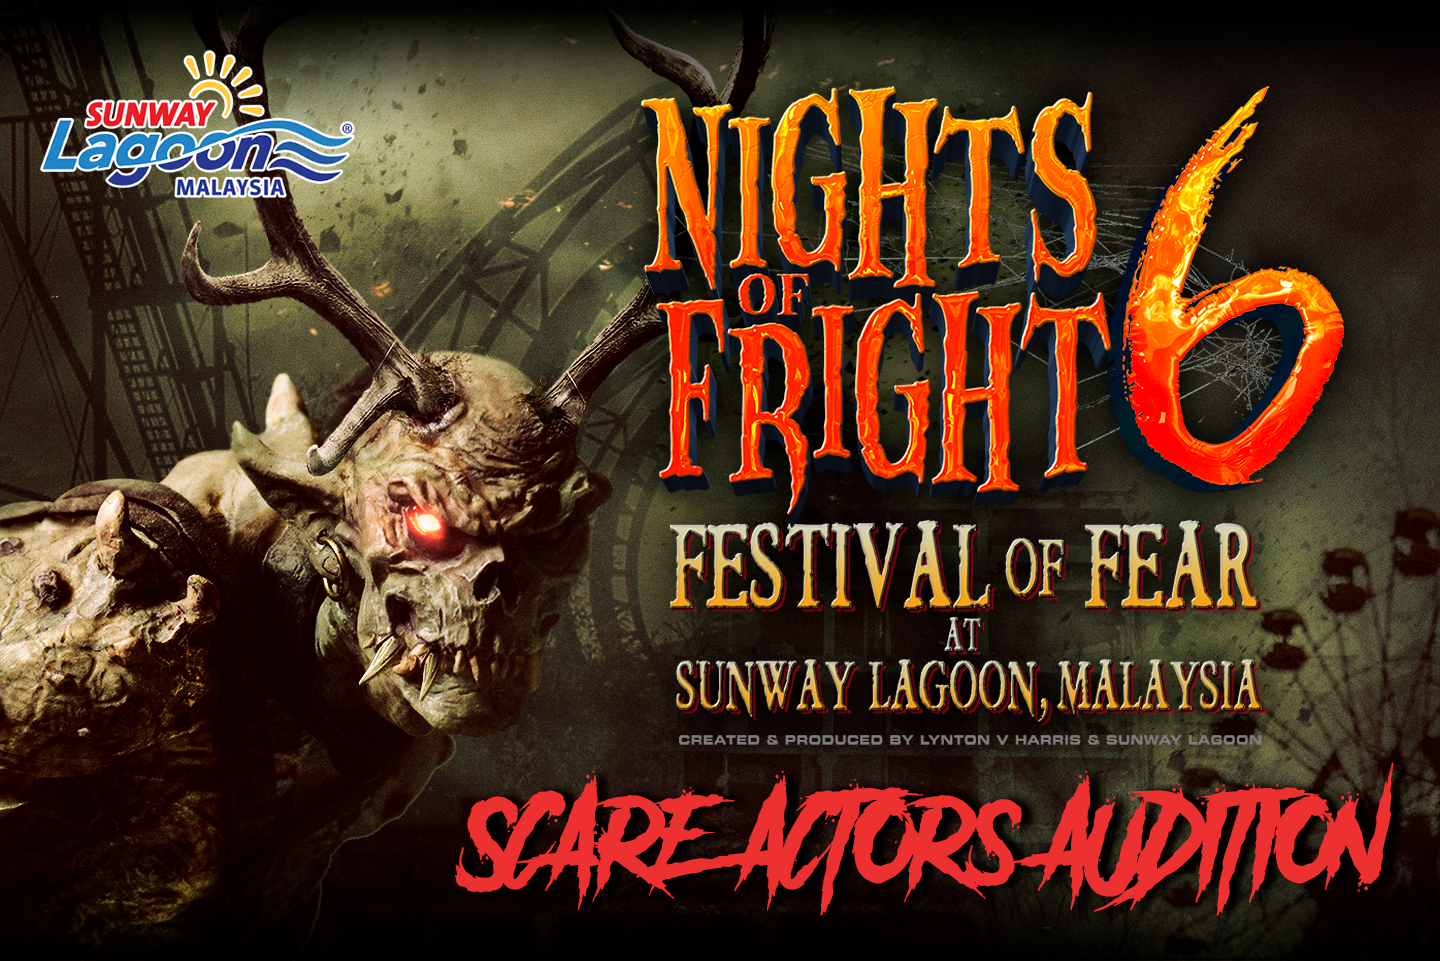 Nights of Fright 6 | Scare Actor Audition